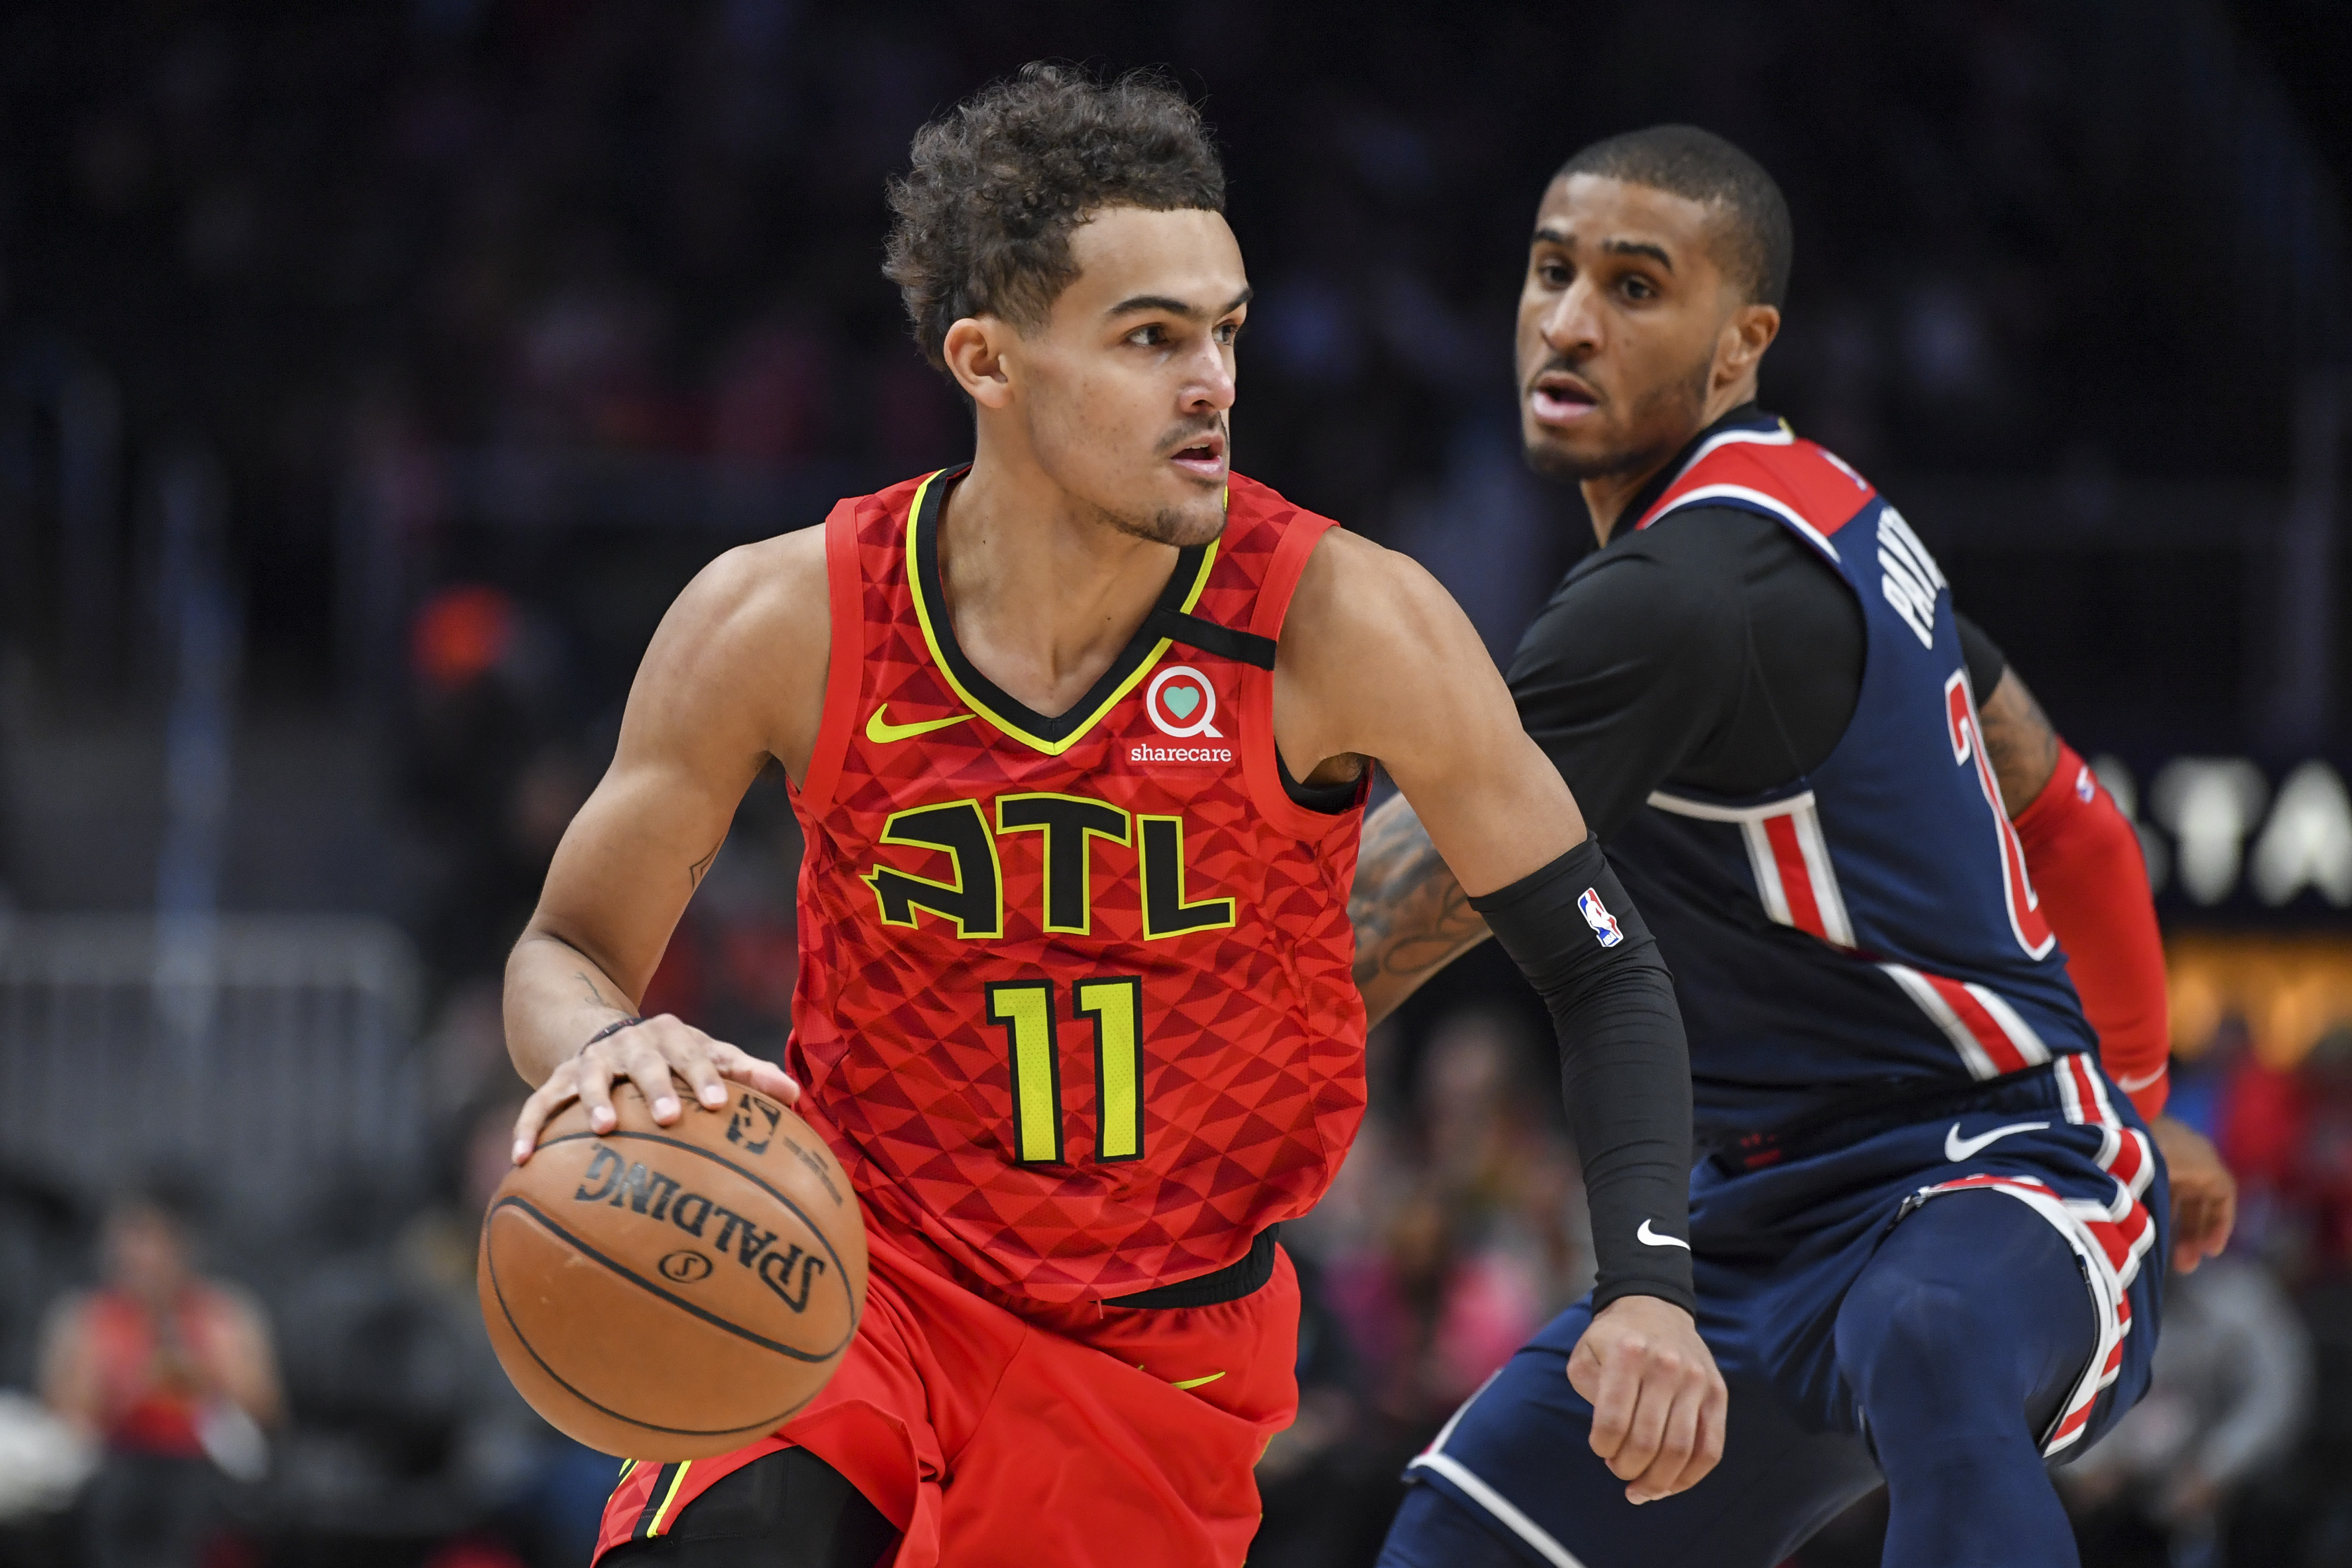 Atlanta Hawks guard Trae Young dribbles the ball past Washington Wizards guard Gary Payton II during the second half at State Farm Arena.